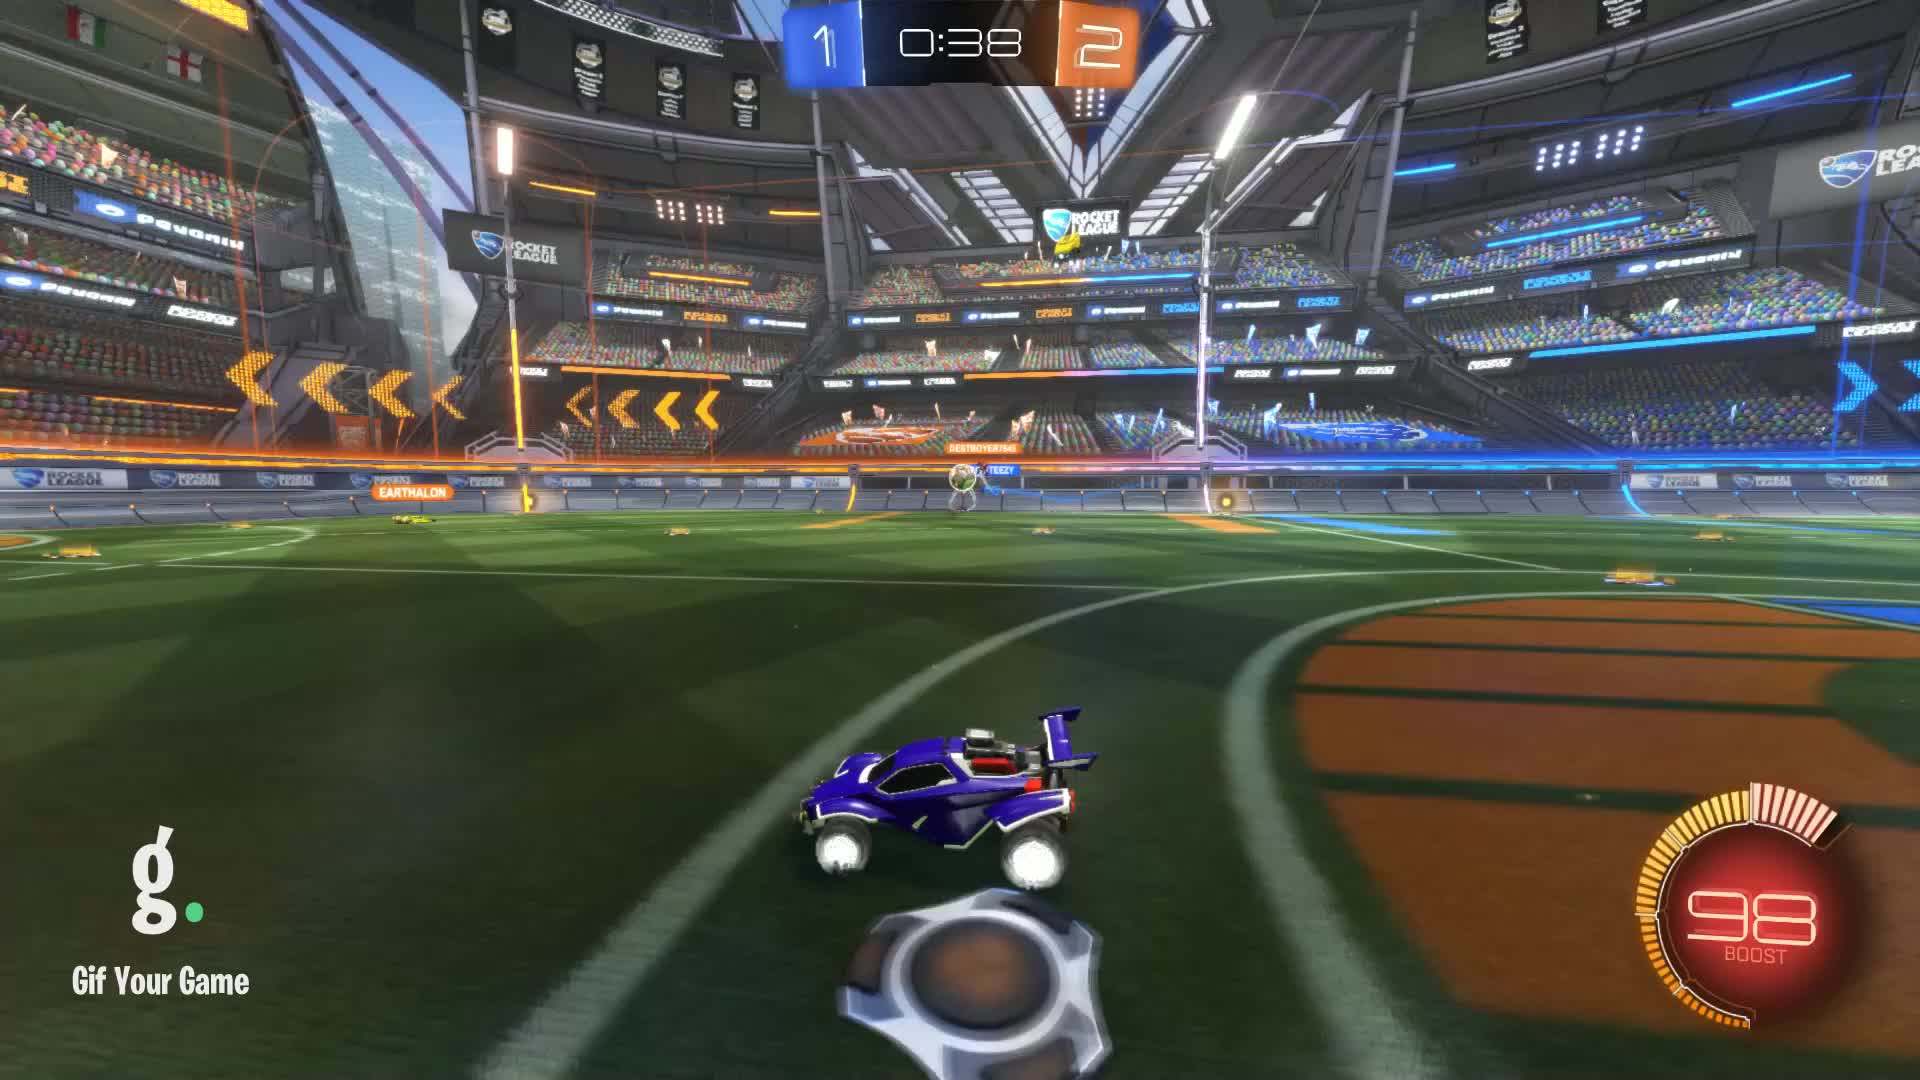 Gif Your Game, GifYourGame, Goal, Rocket League, RocketLeague, Whiff Kitty, Goal 4: Whiff Kitty GIFs